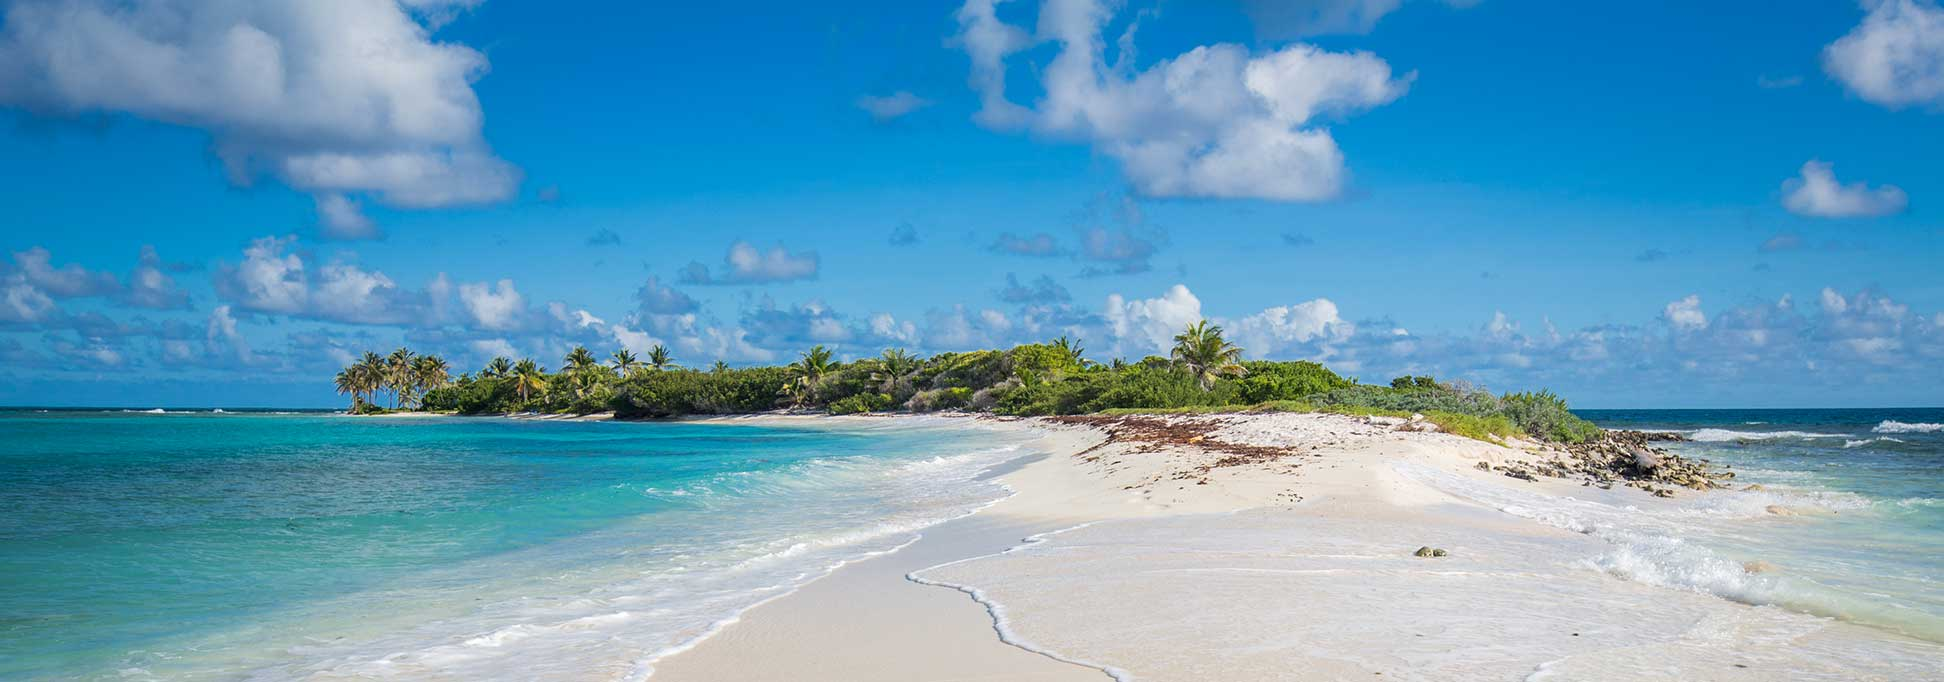 Petit Tabac an island in St Vincent and the Grenadines in the Caribbean